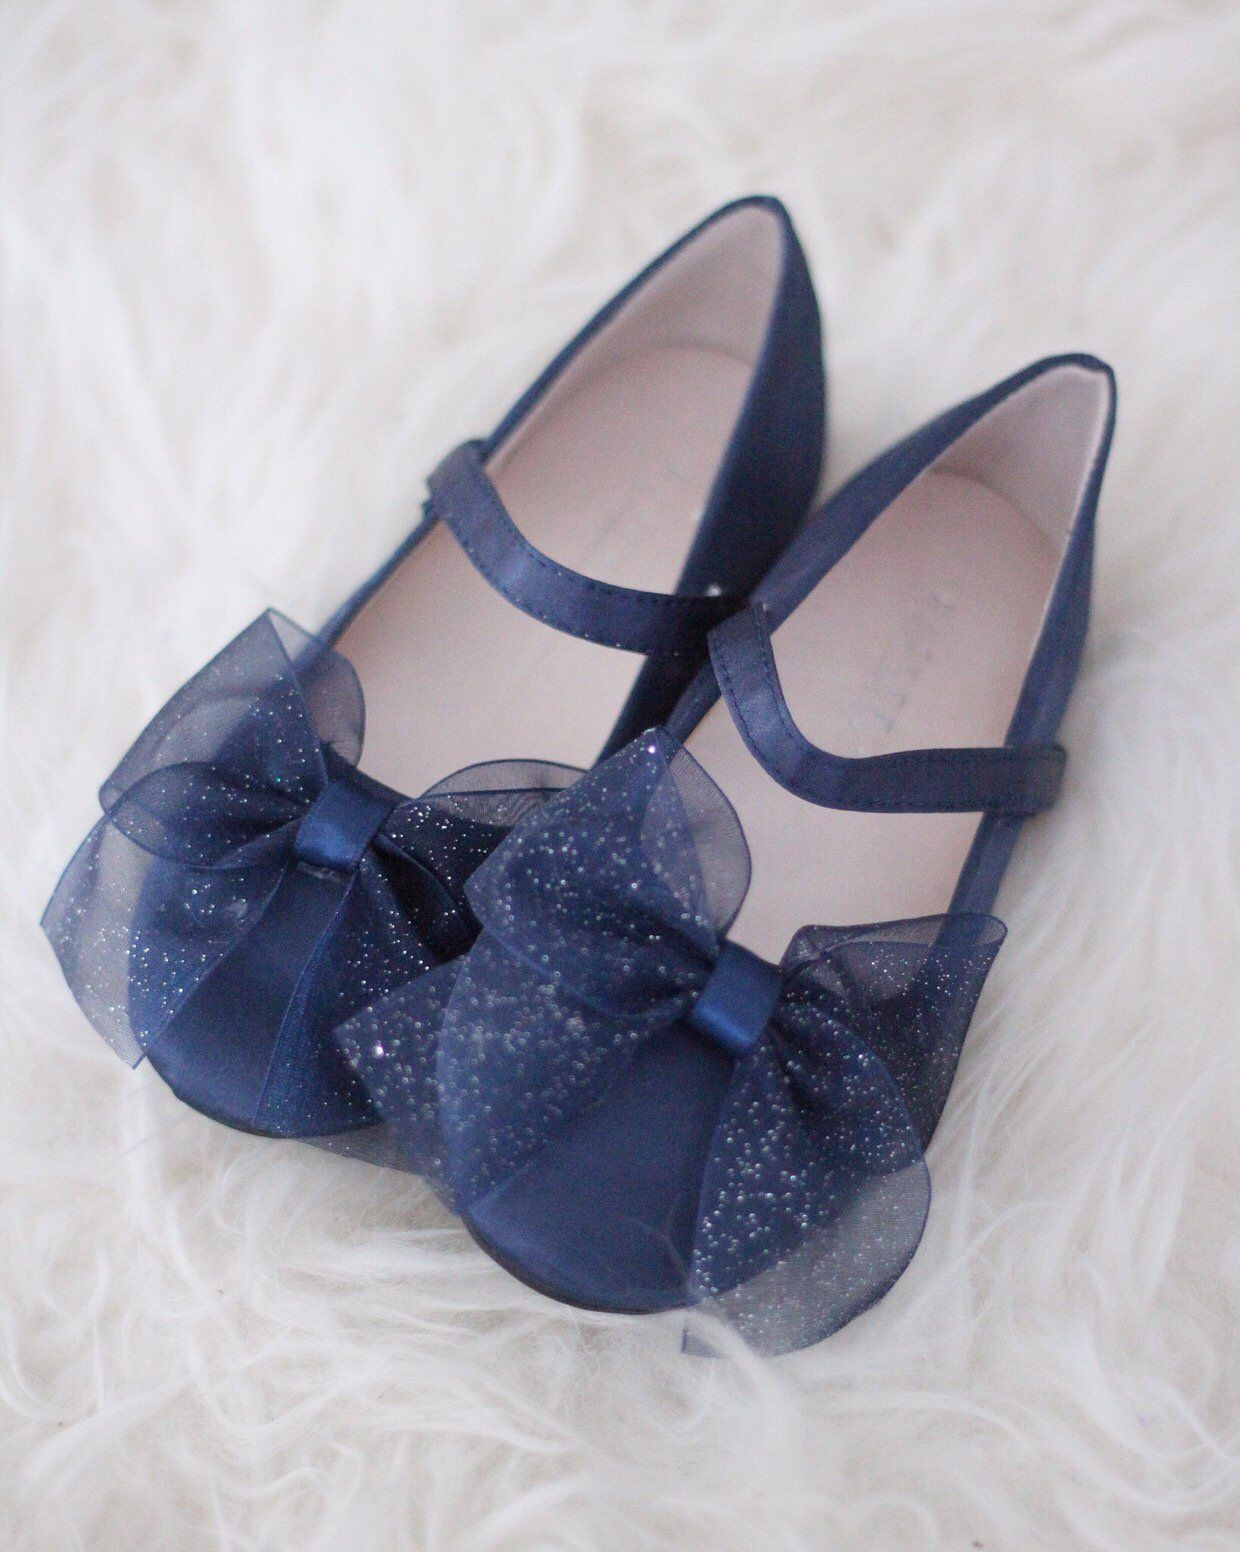 381bf5ea479 Girls navy satin shoes maryjane flats with glitter chiffon bow ...